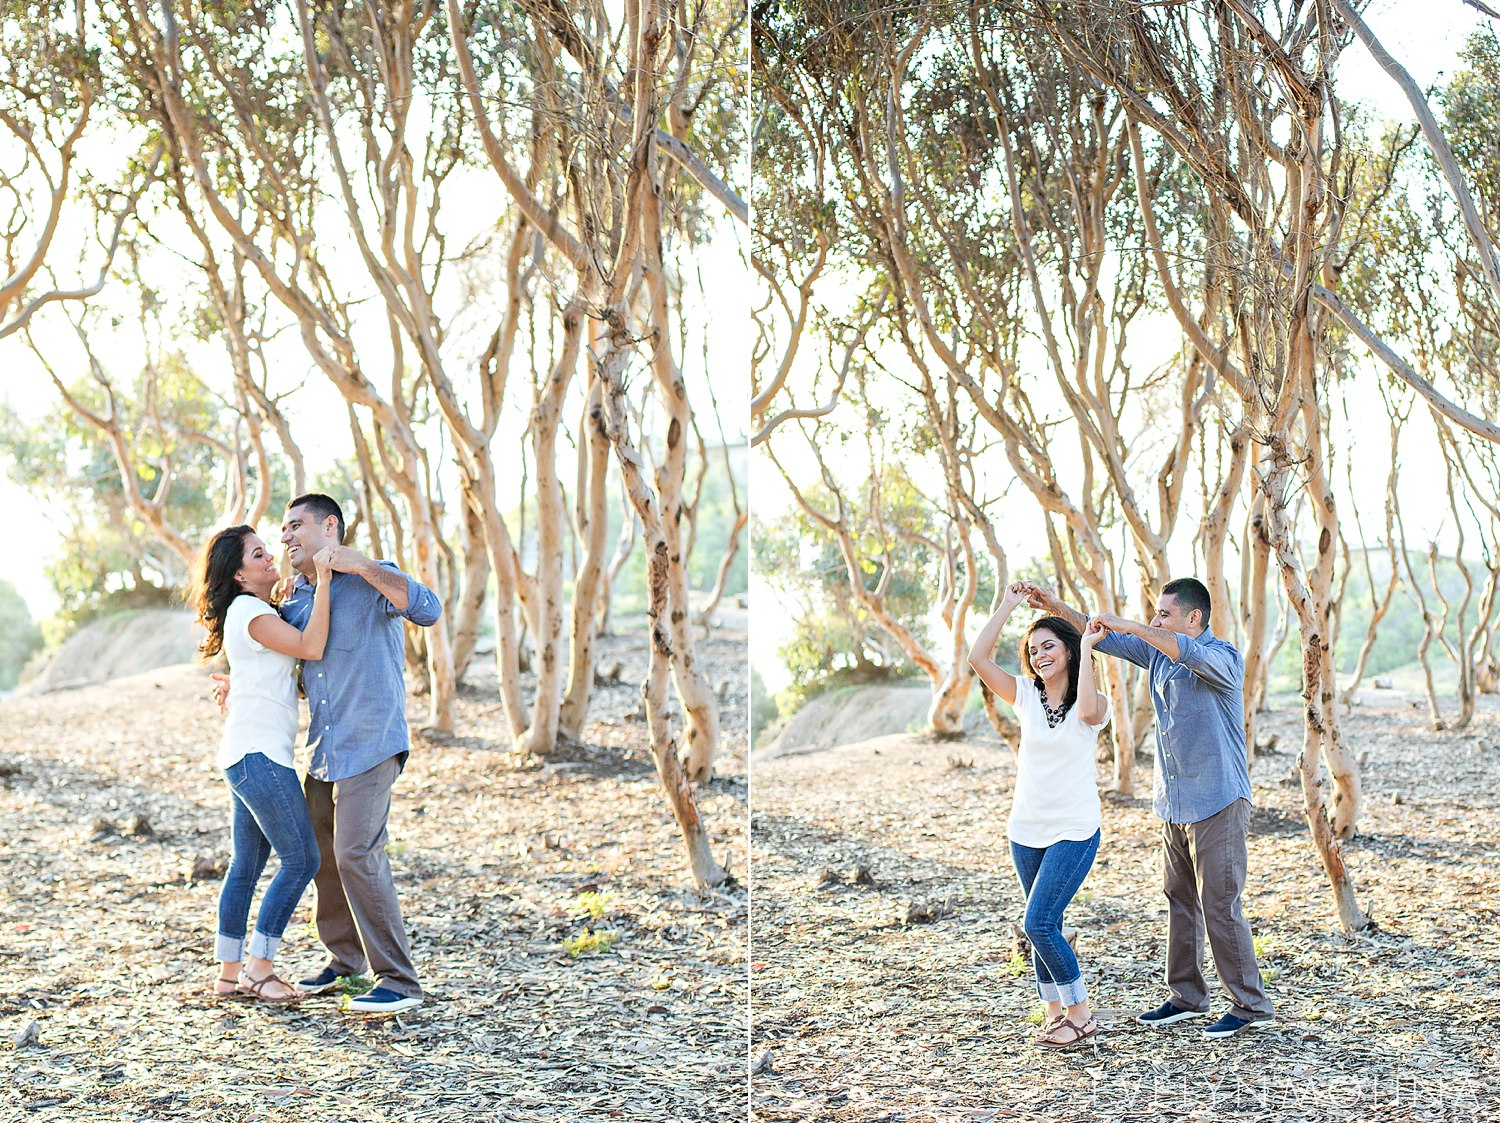 Sunset Cliffs Engagement - Berenice and David_008.jpg